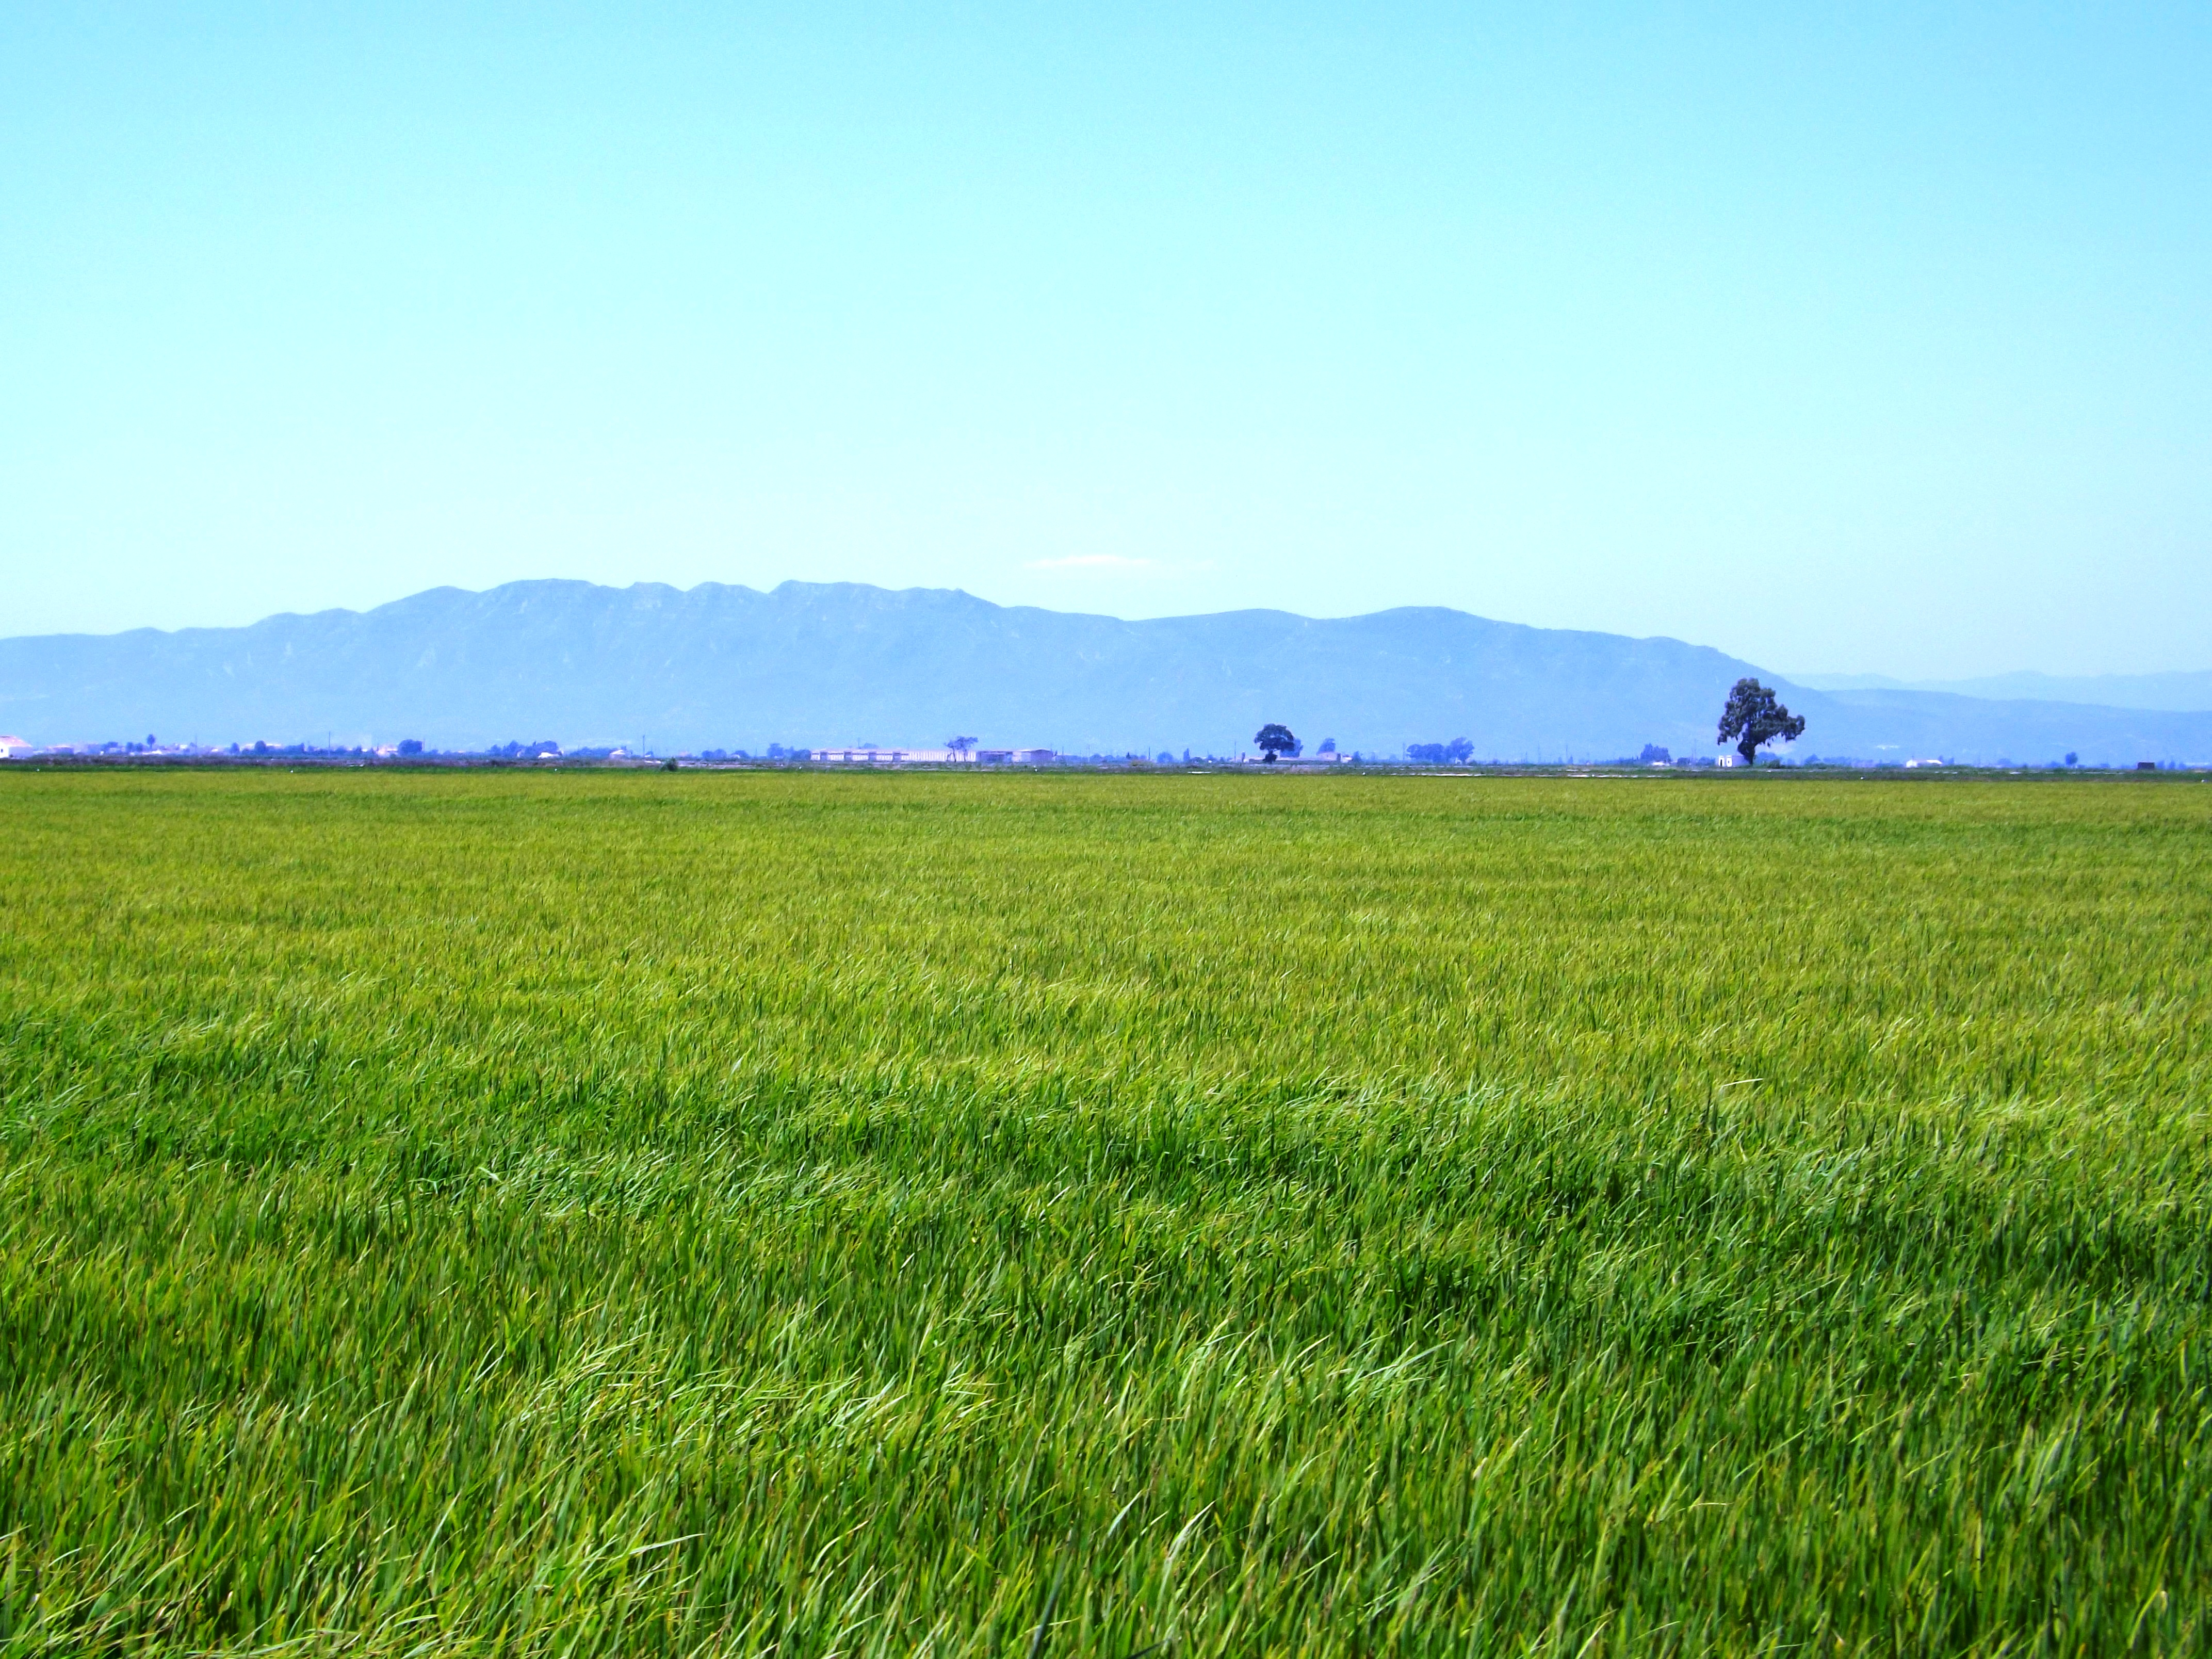 A field of the rice variety Bomba growing in the delta of the Ebro River in Spain